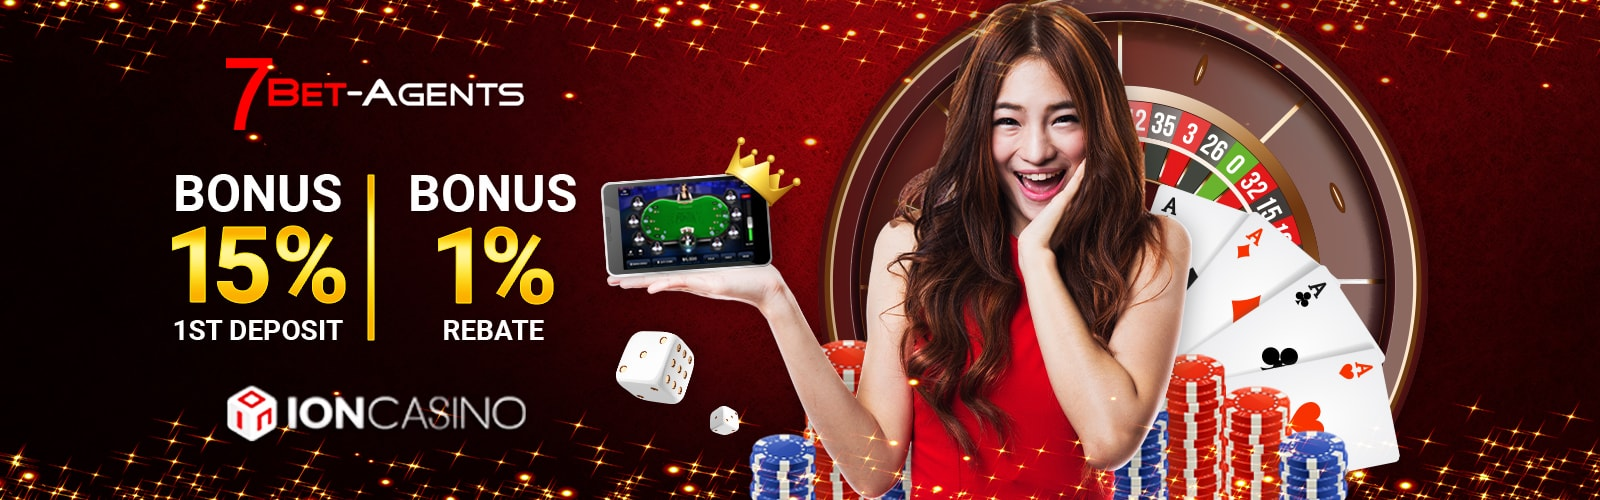 7bet Promotions